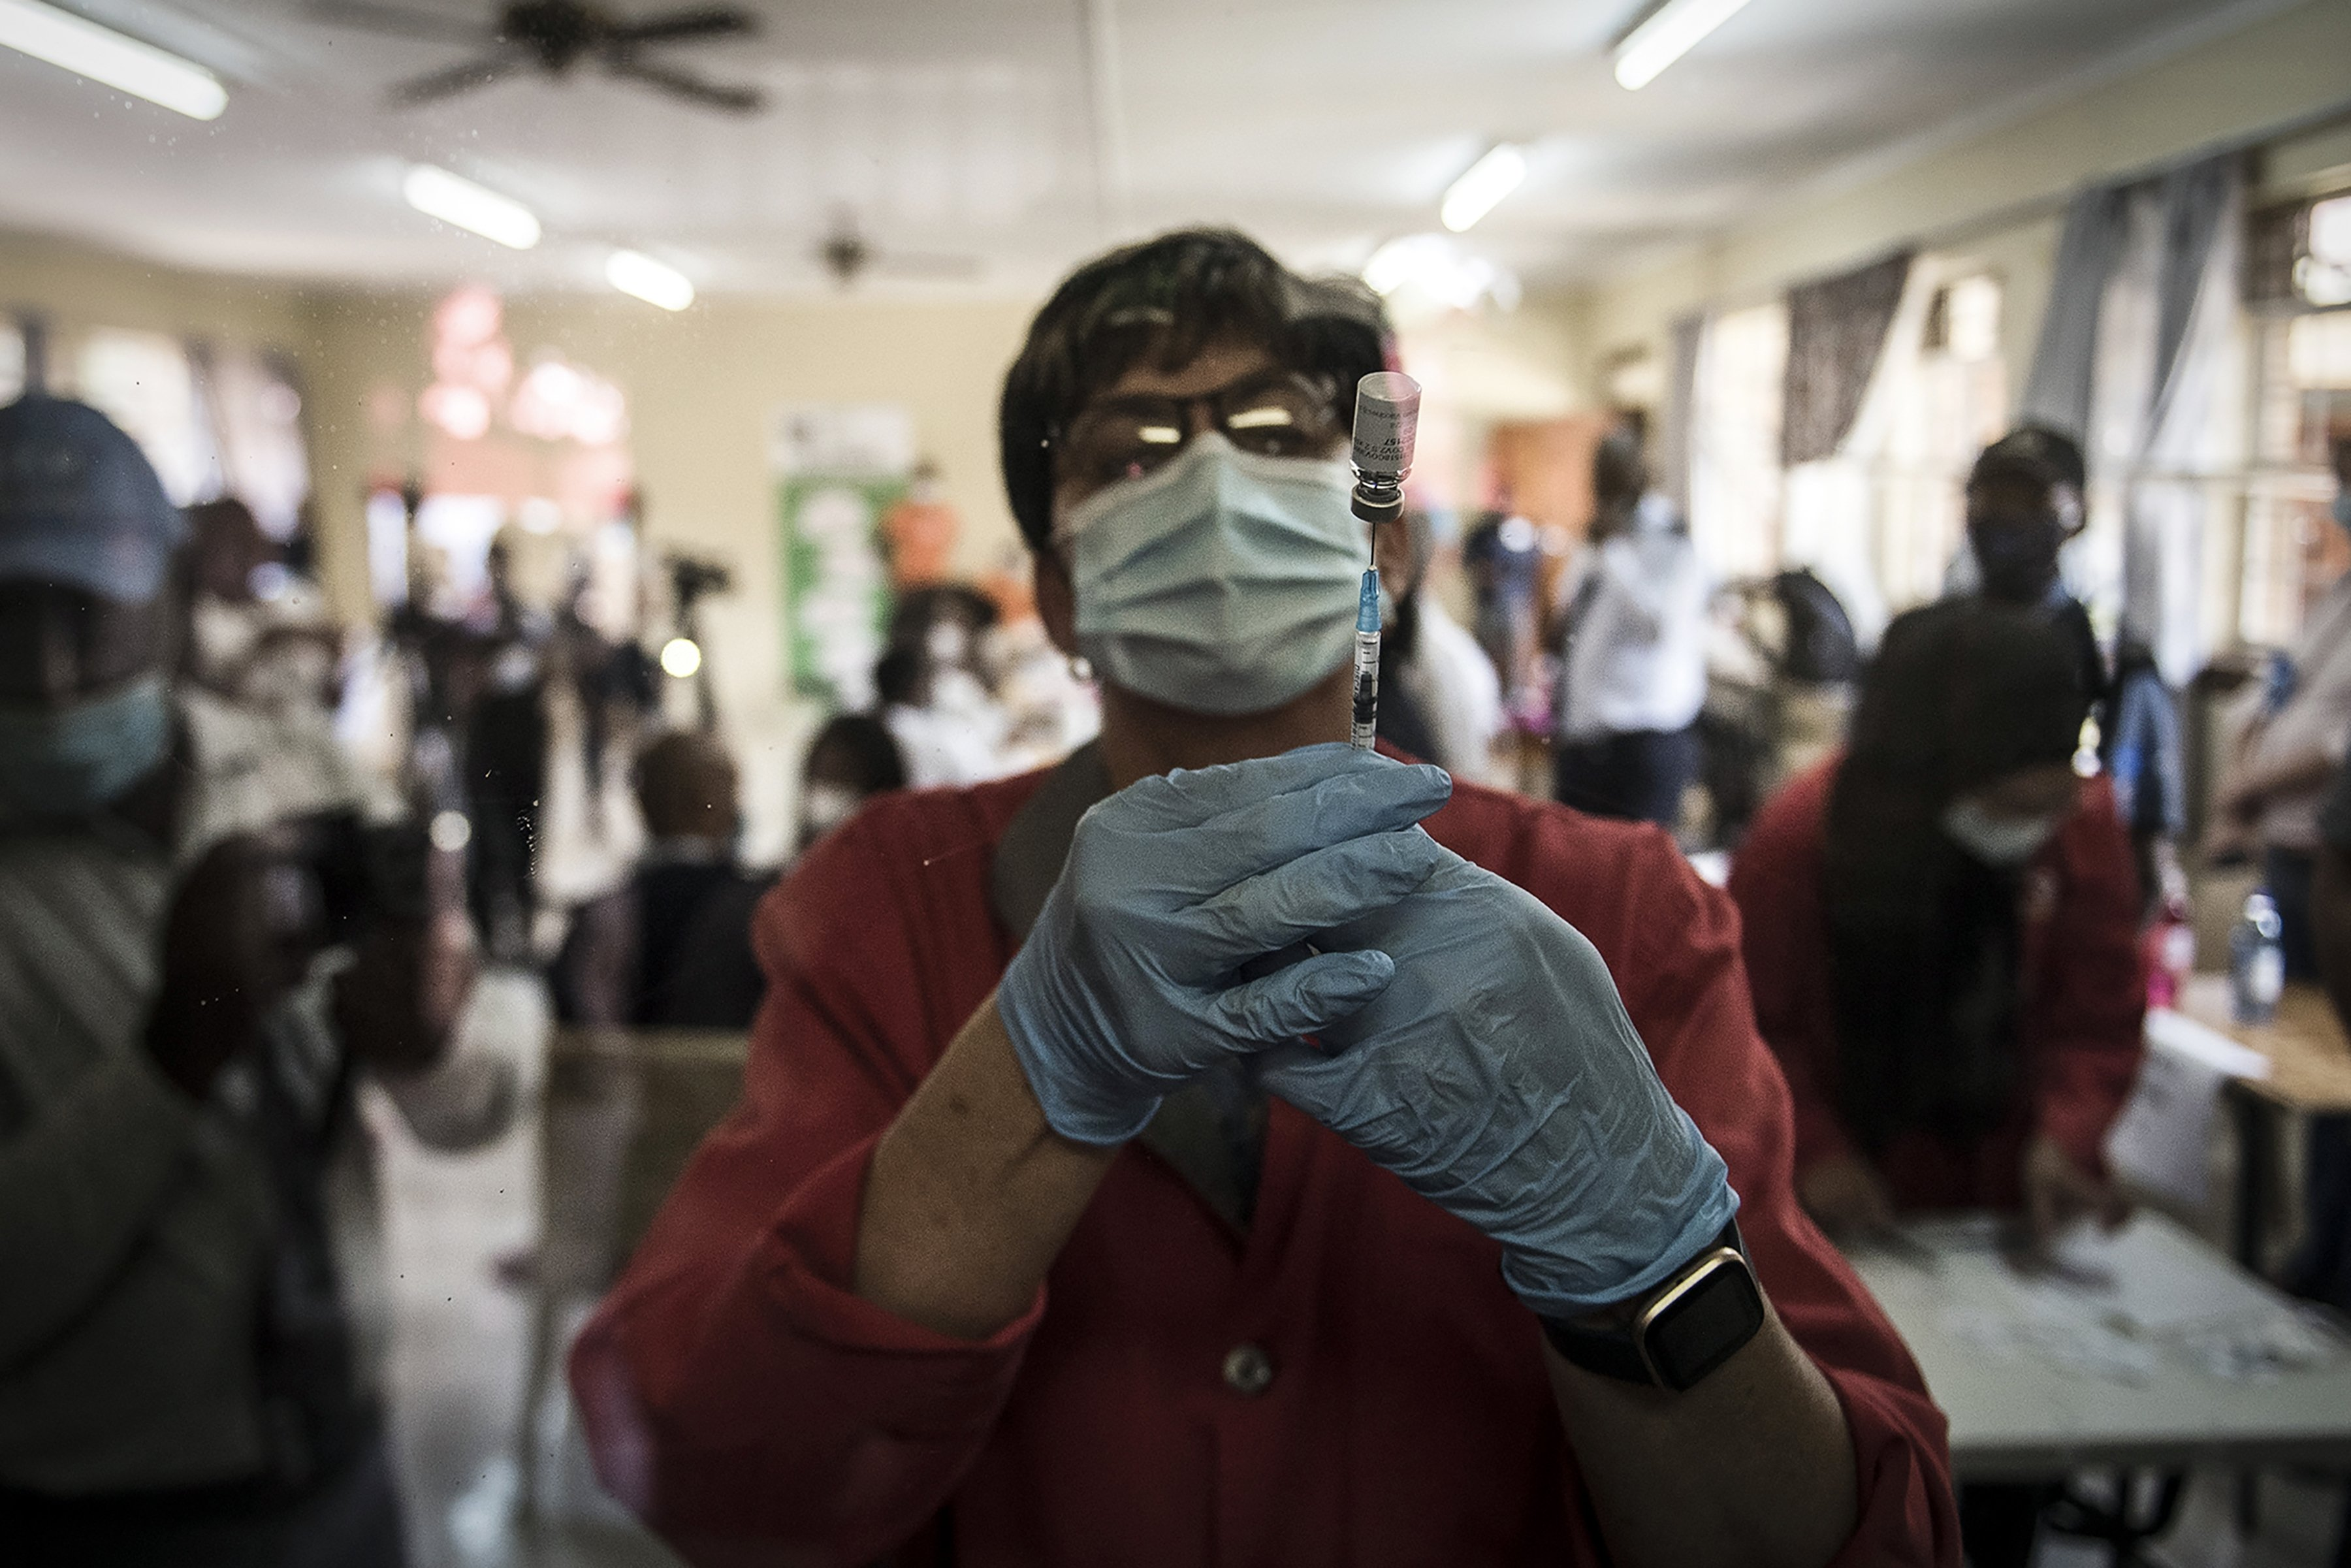 A pharmacist prepares the Johnson & Johnson COVID-19 vaccine to administer to health care workers at the government hospital in Klerksdorp, South Africa, Feb. 18, 2021. (AP Photo/Shiraaz Mohamed)